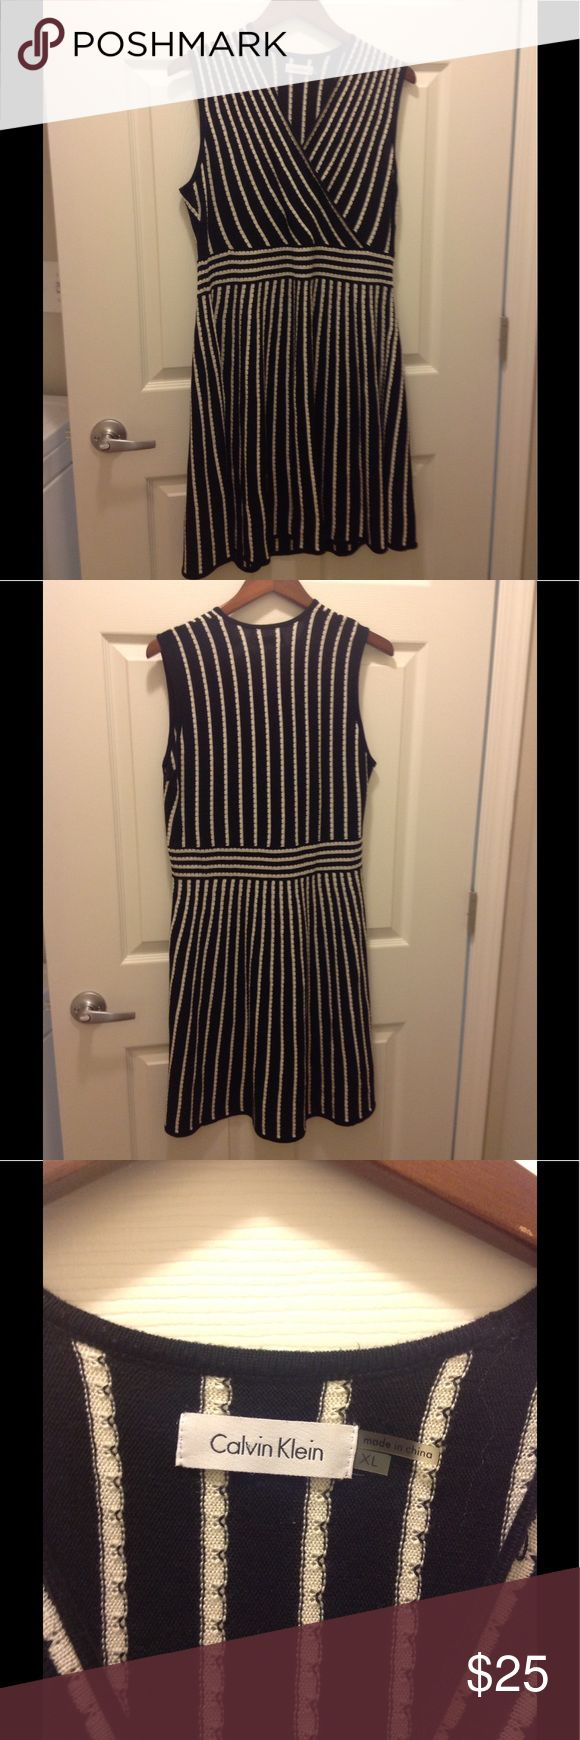 Calvin Klein Women's V-Neck Dress Size Xlg Beautiful Women's Calvin Klein 100% Acrylic V-neck Dress.  Can be worn dressed up or just casually with flats.  This is an extremely easy dress to take care of, don't miss this bargain!! Calvin Klein Dresses Midi